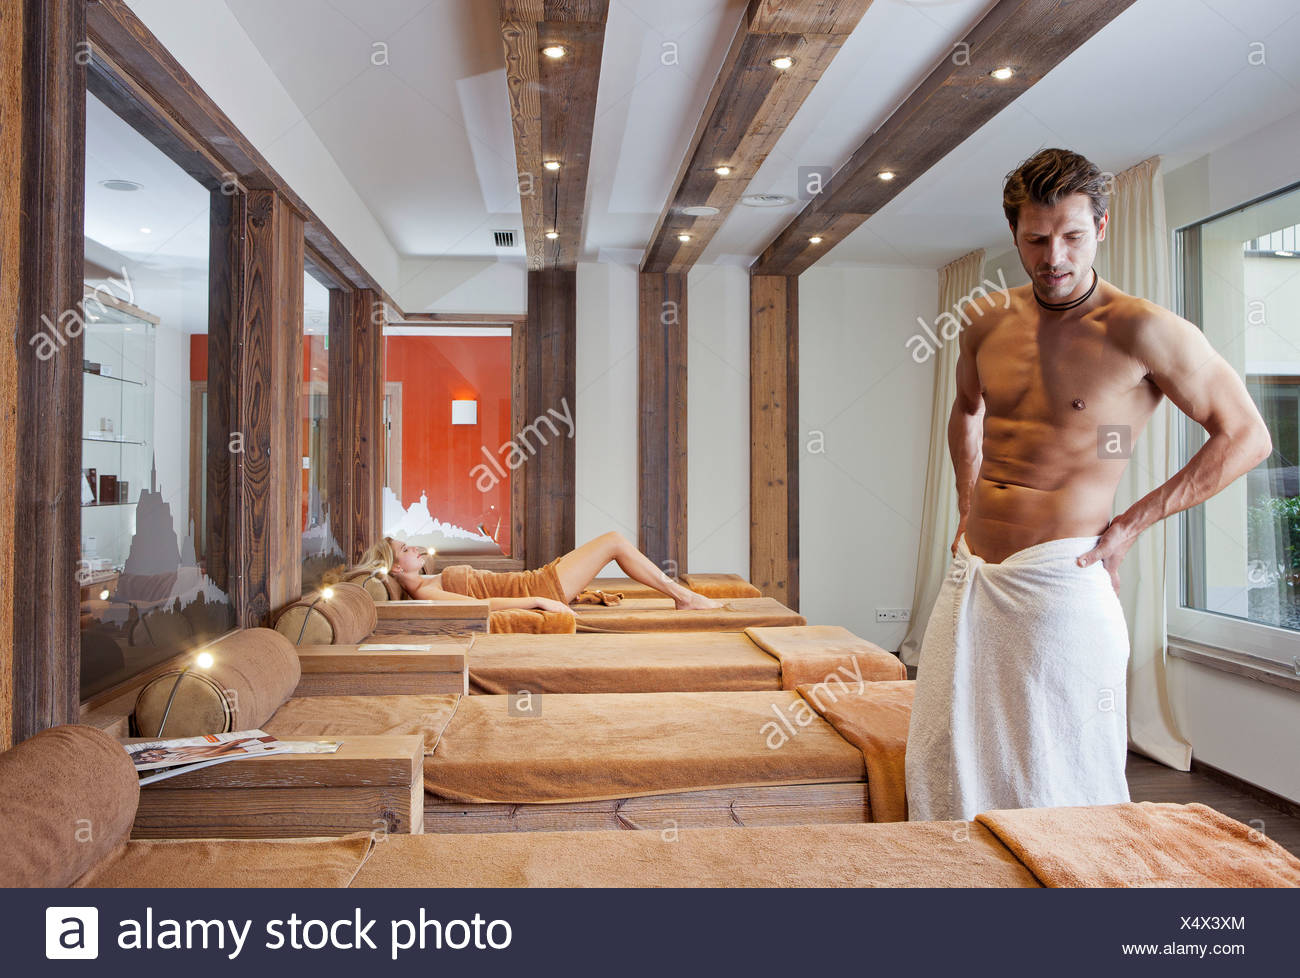 Man and woman relaxing in the relaxation area of a sauna - Stock Image